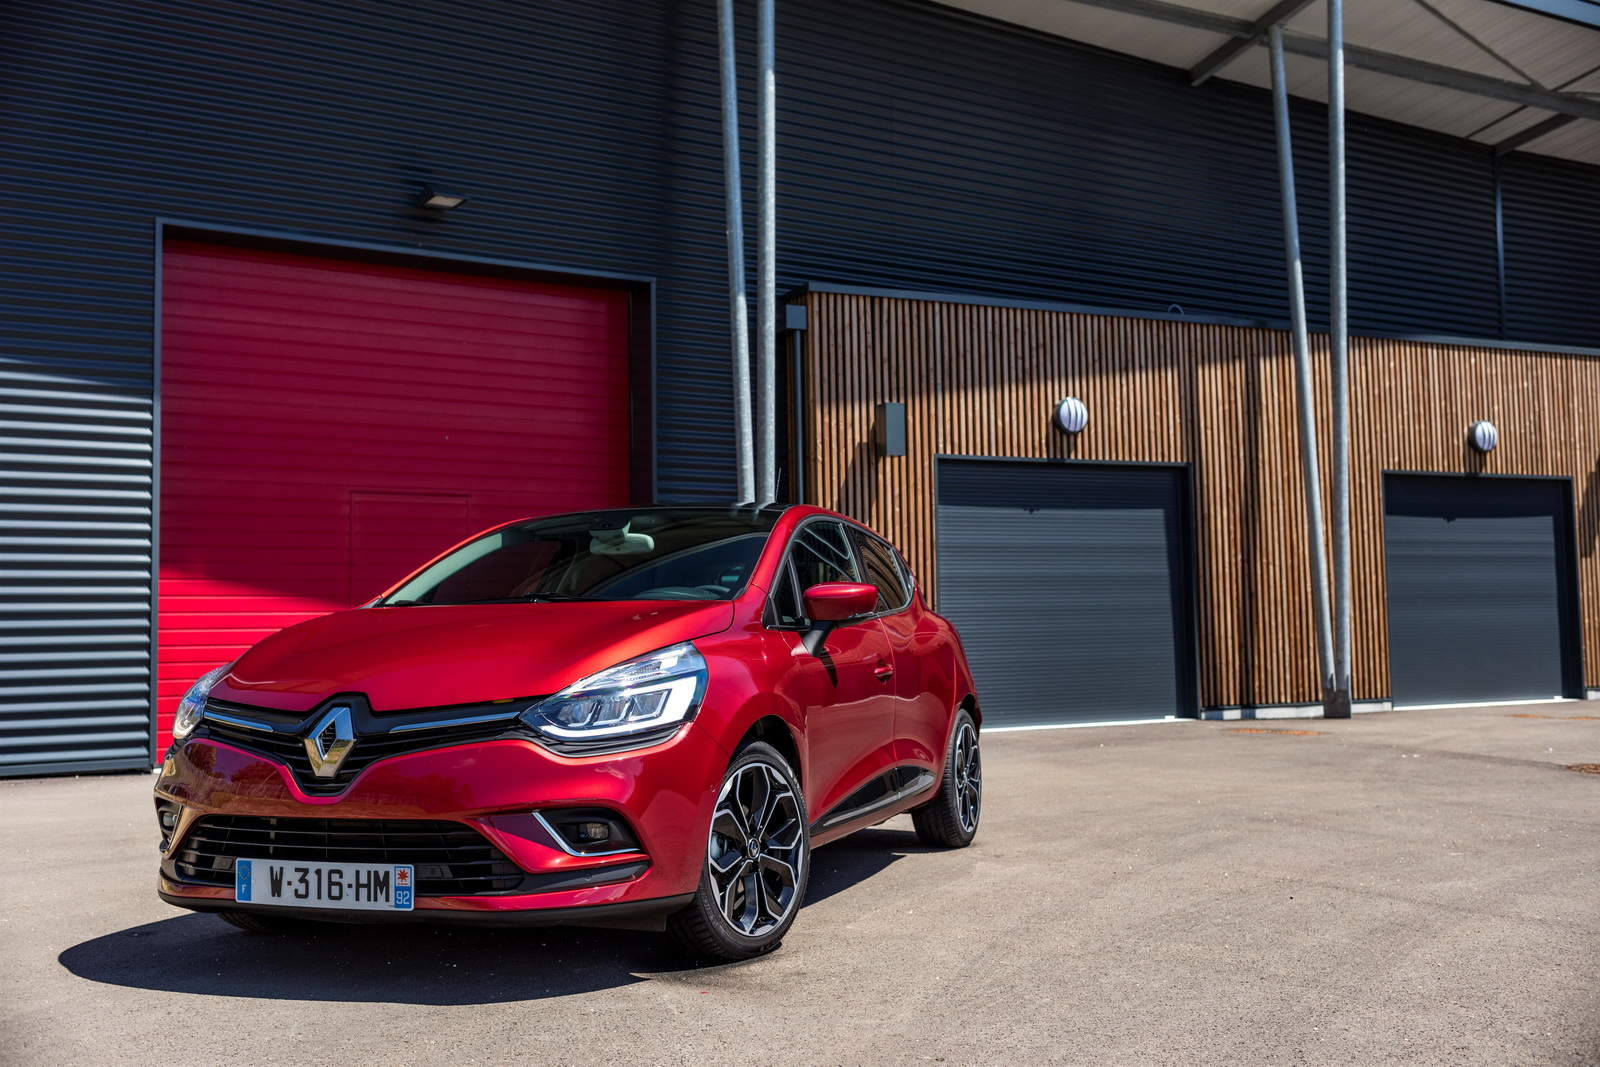 renault drops more images of the updated clio carscoops. Black Bedroom Furniture Sets. Home Design Ideas